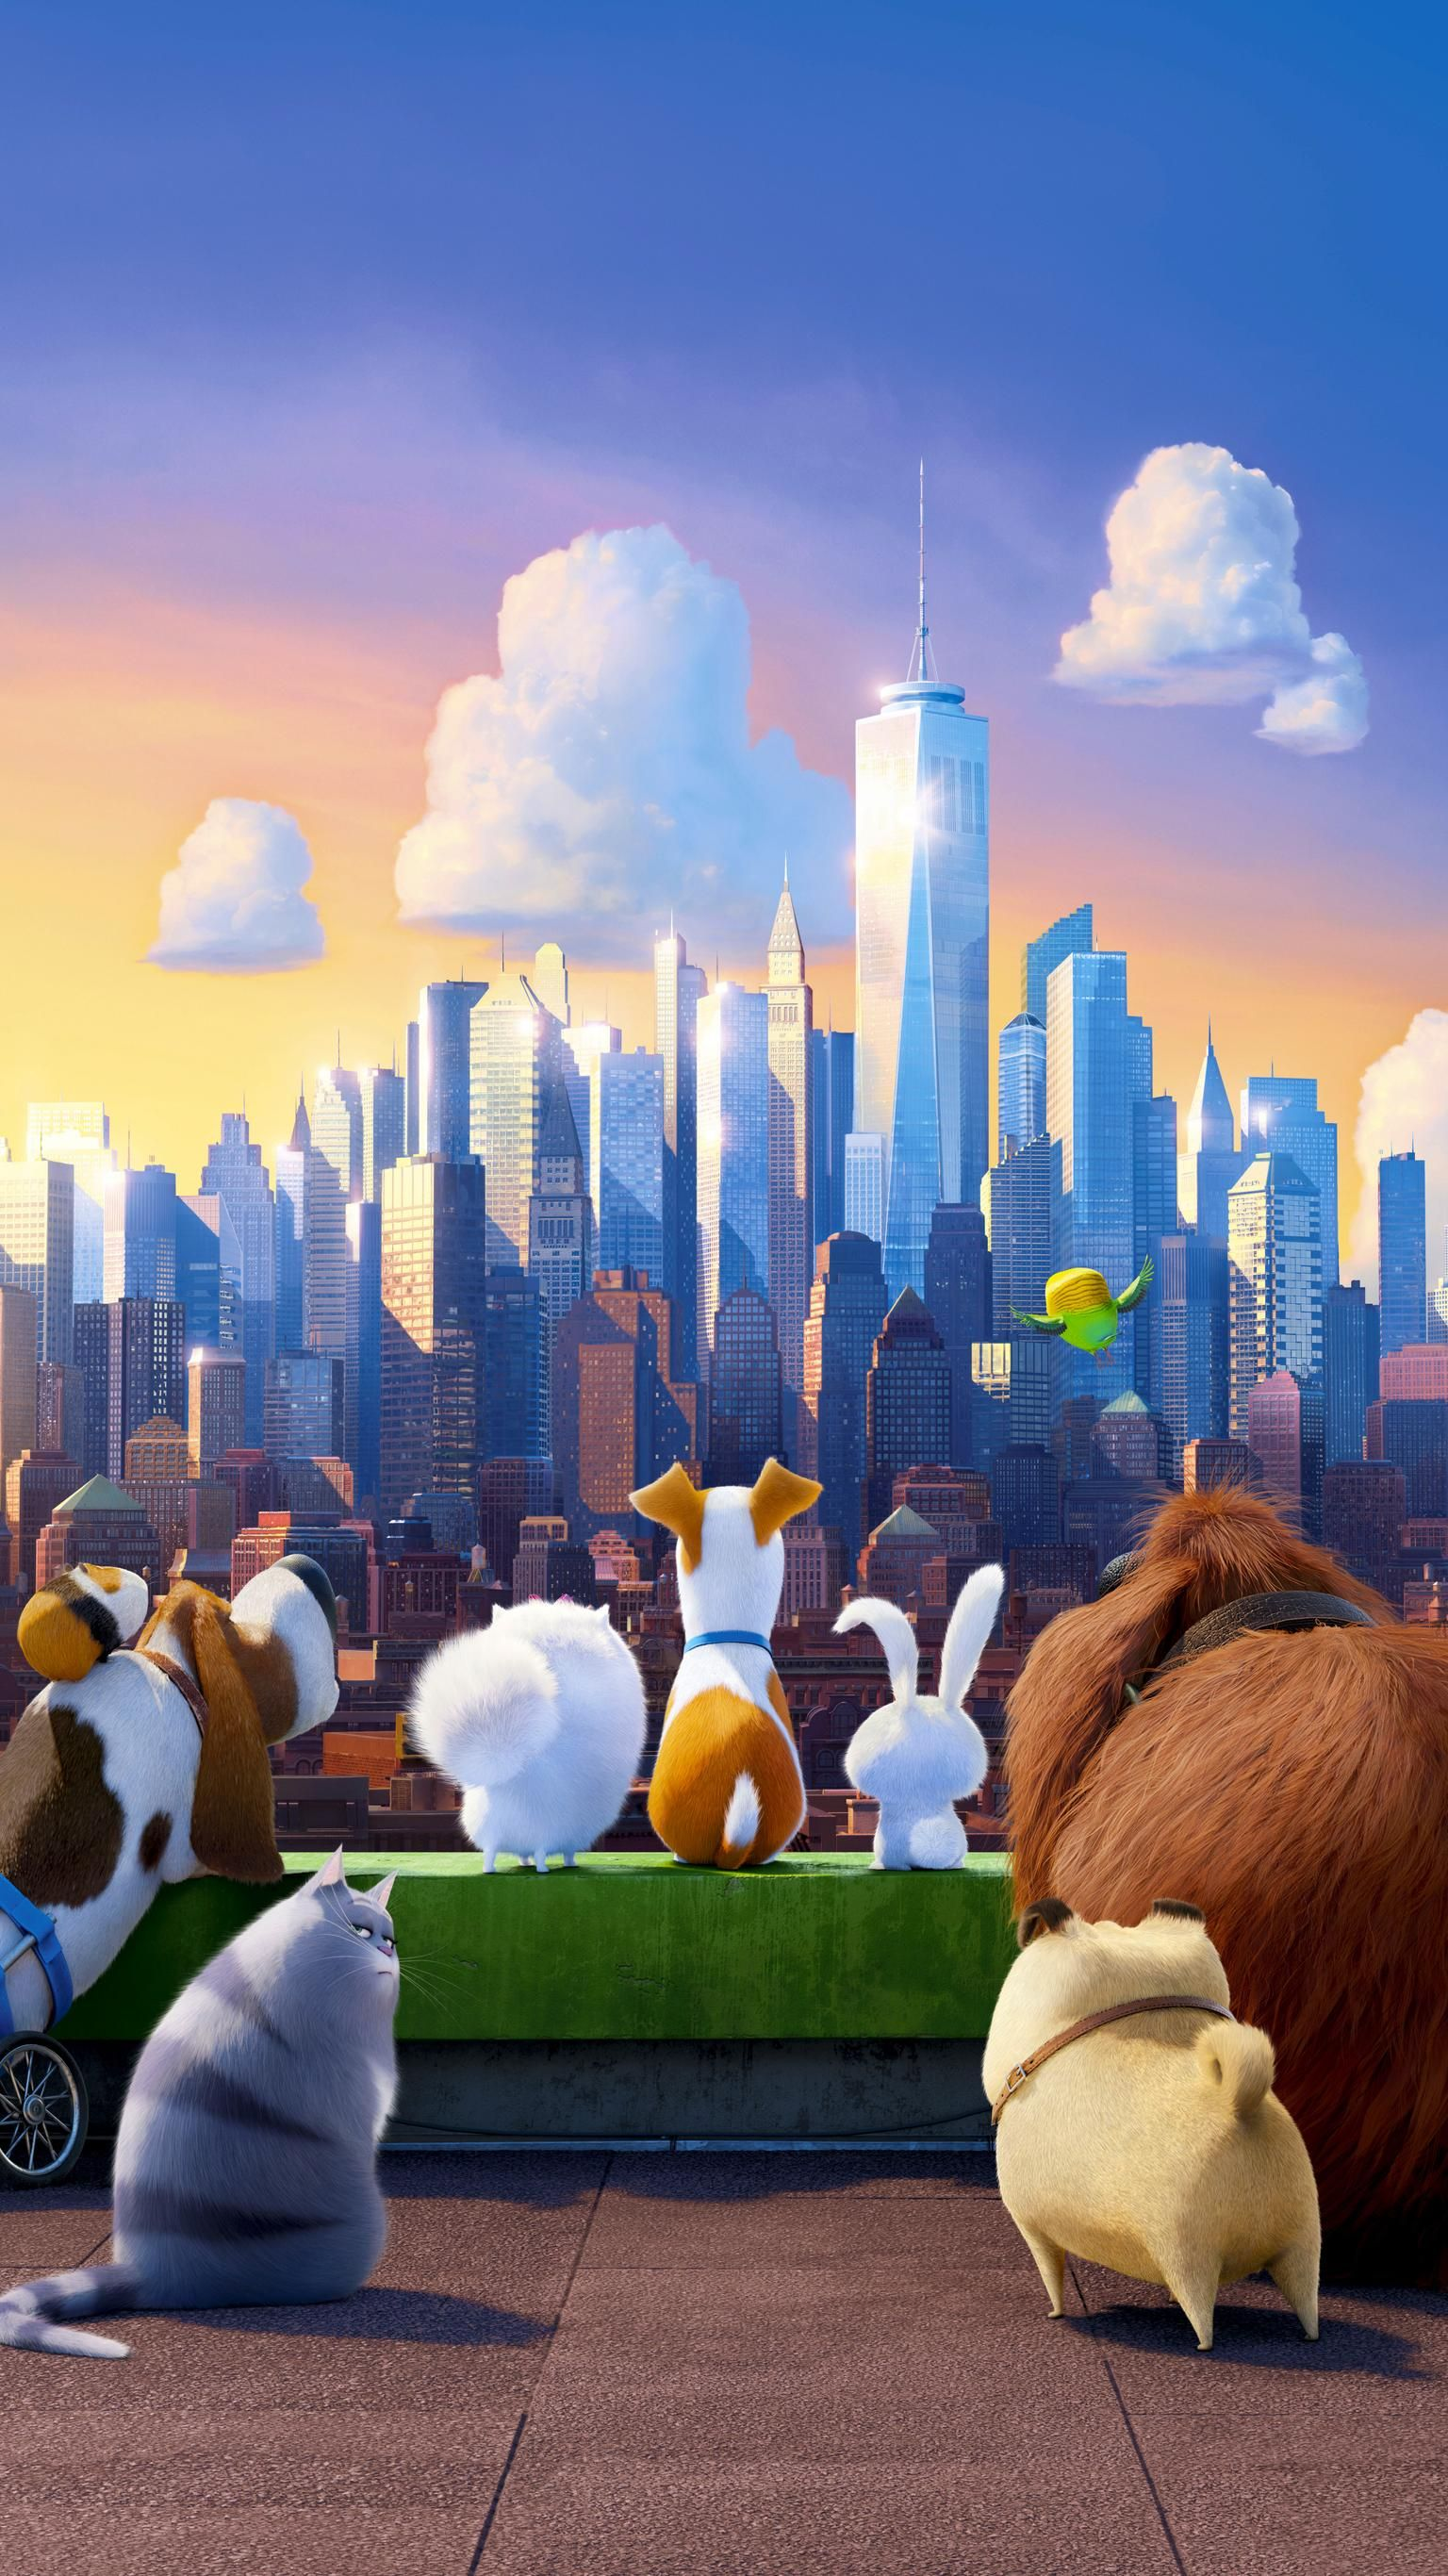 The Secret Life Of Pets 2016 Phone Wallpaper Moviemania Funny Movies For Kids Secret Life Of Pets Pets Movie